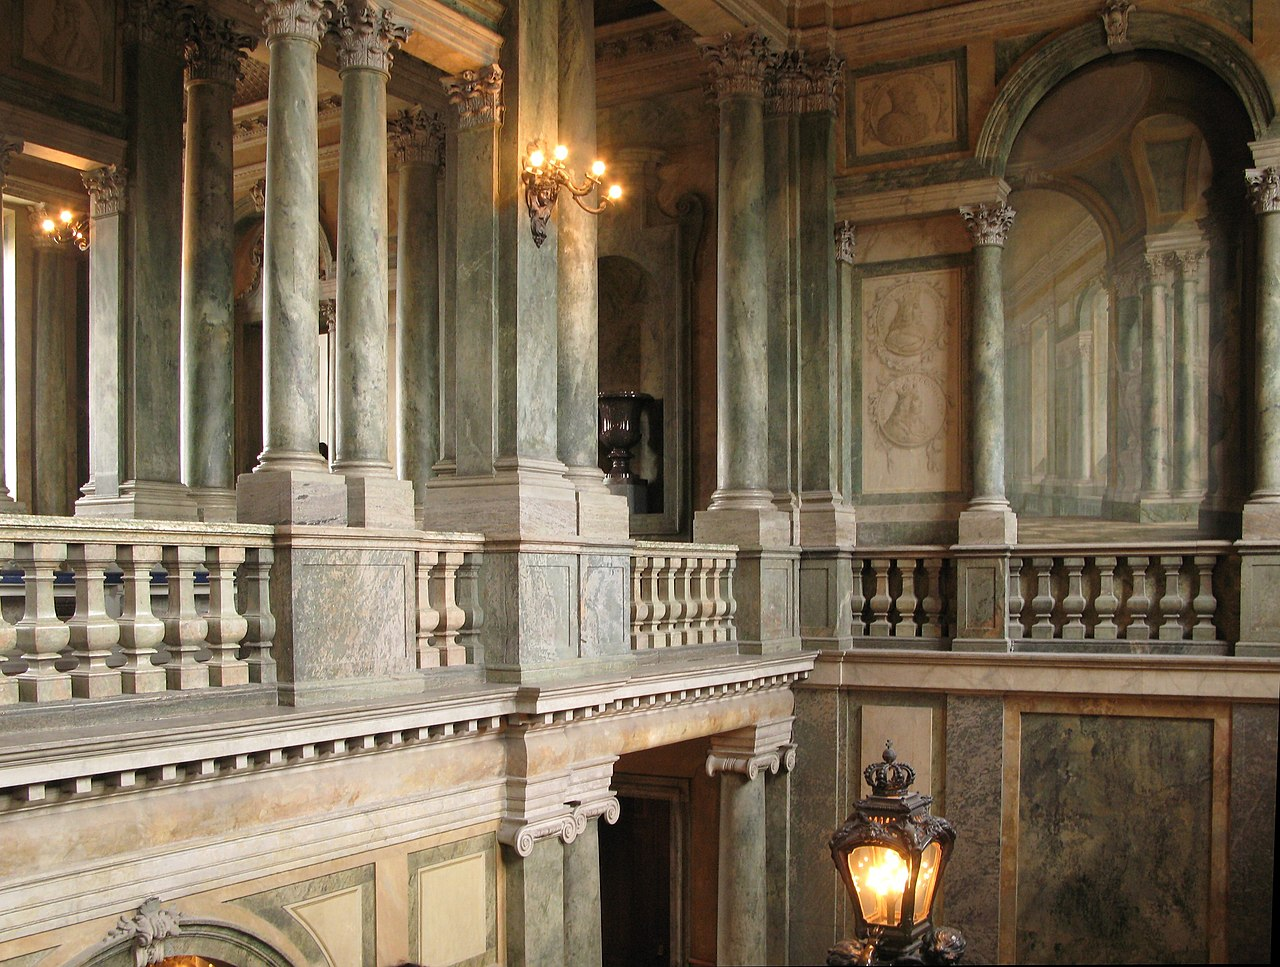 File:Staircase 2, Royal Palace, Stockholm.jpg